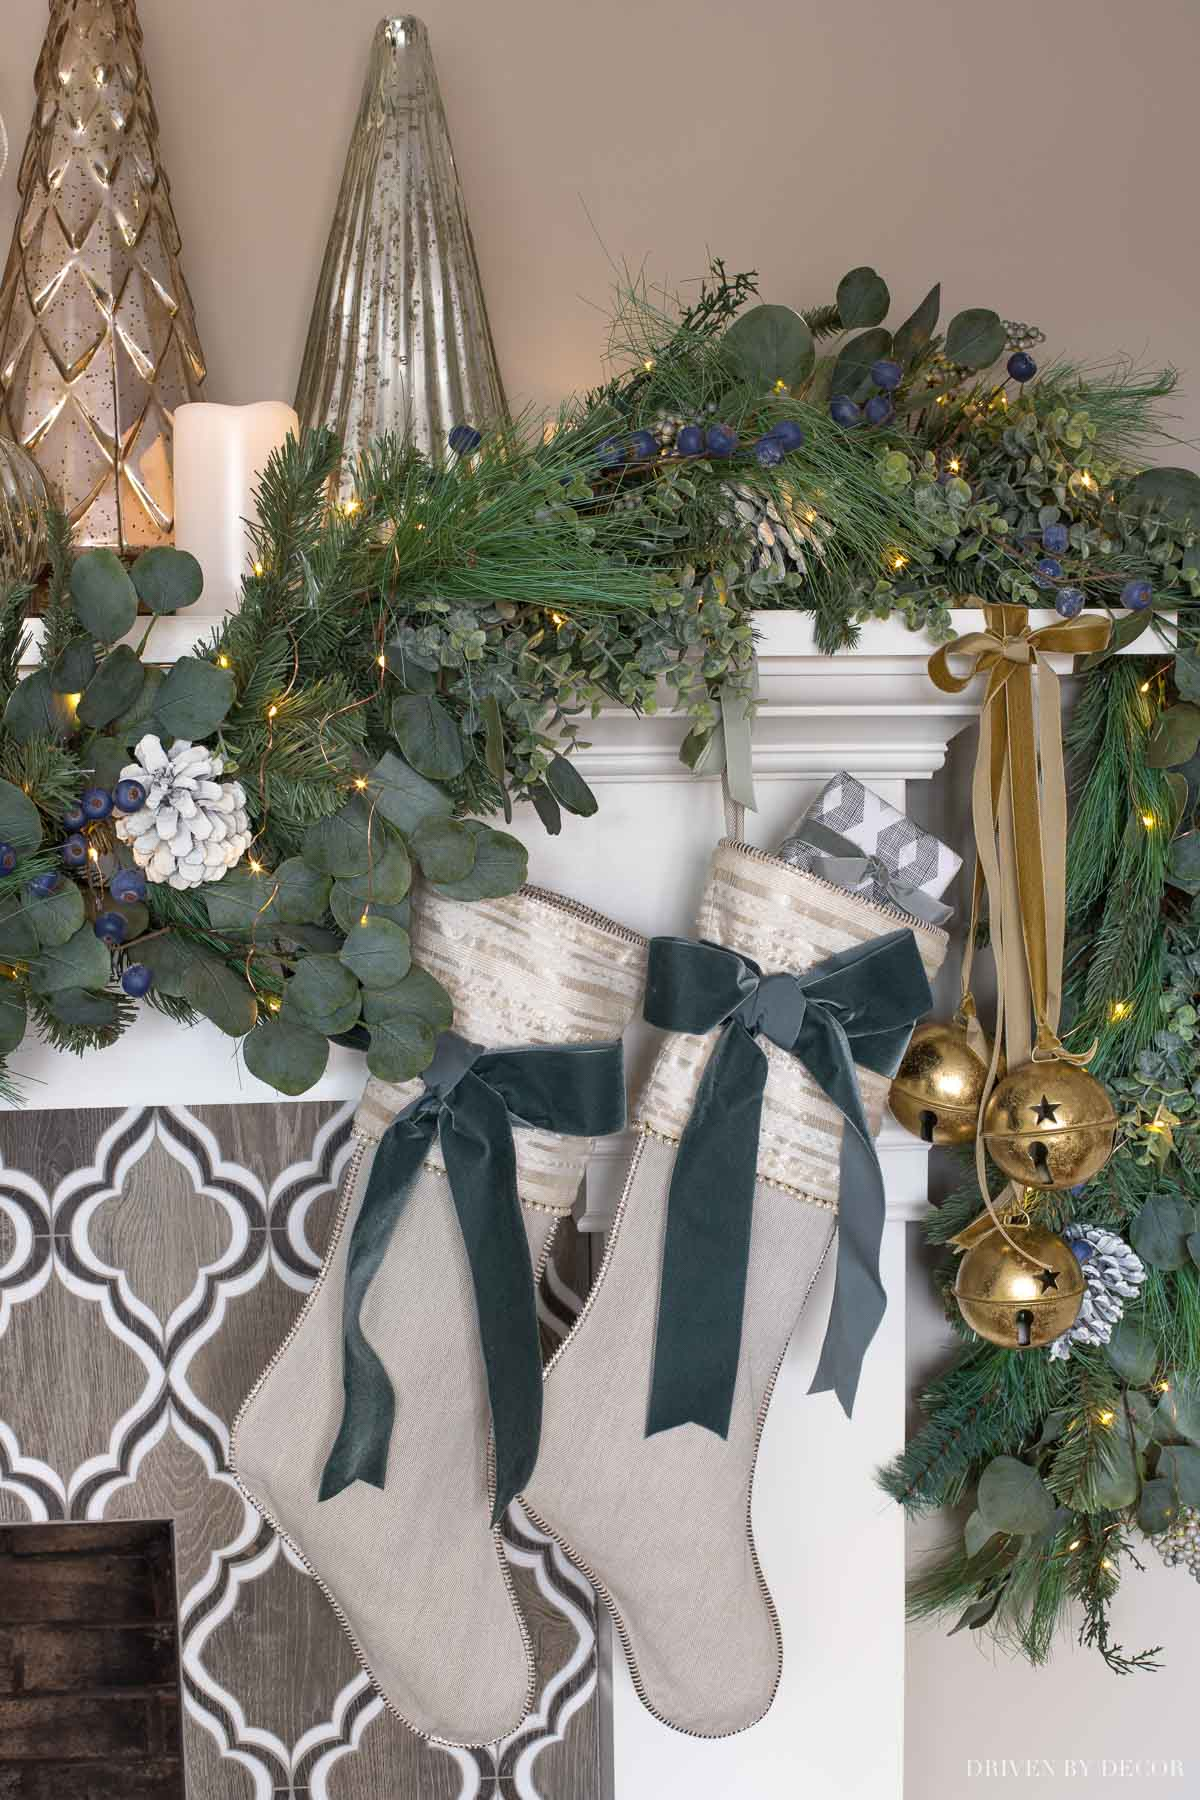 Large gold jingle bells tied with velvet ribbon on our fireplace mantel for Christmas